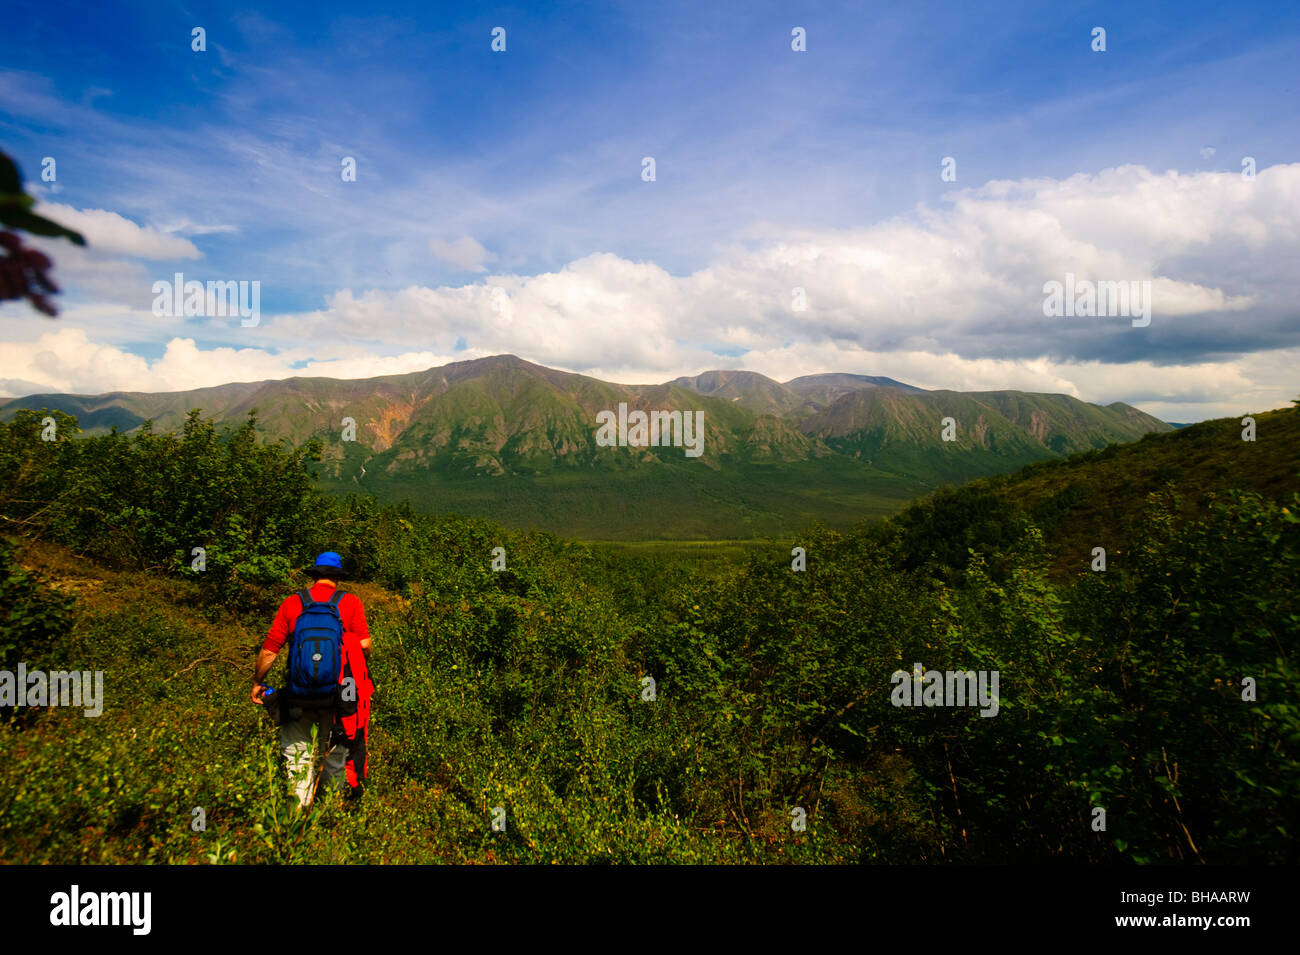 Male hiker on the Skookum Volcano Trail, Wrangell Saint Elias National Park, Southcentral Alaska, Summer - Stock Image